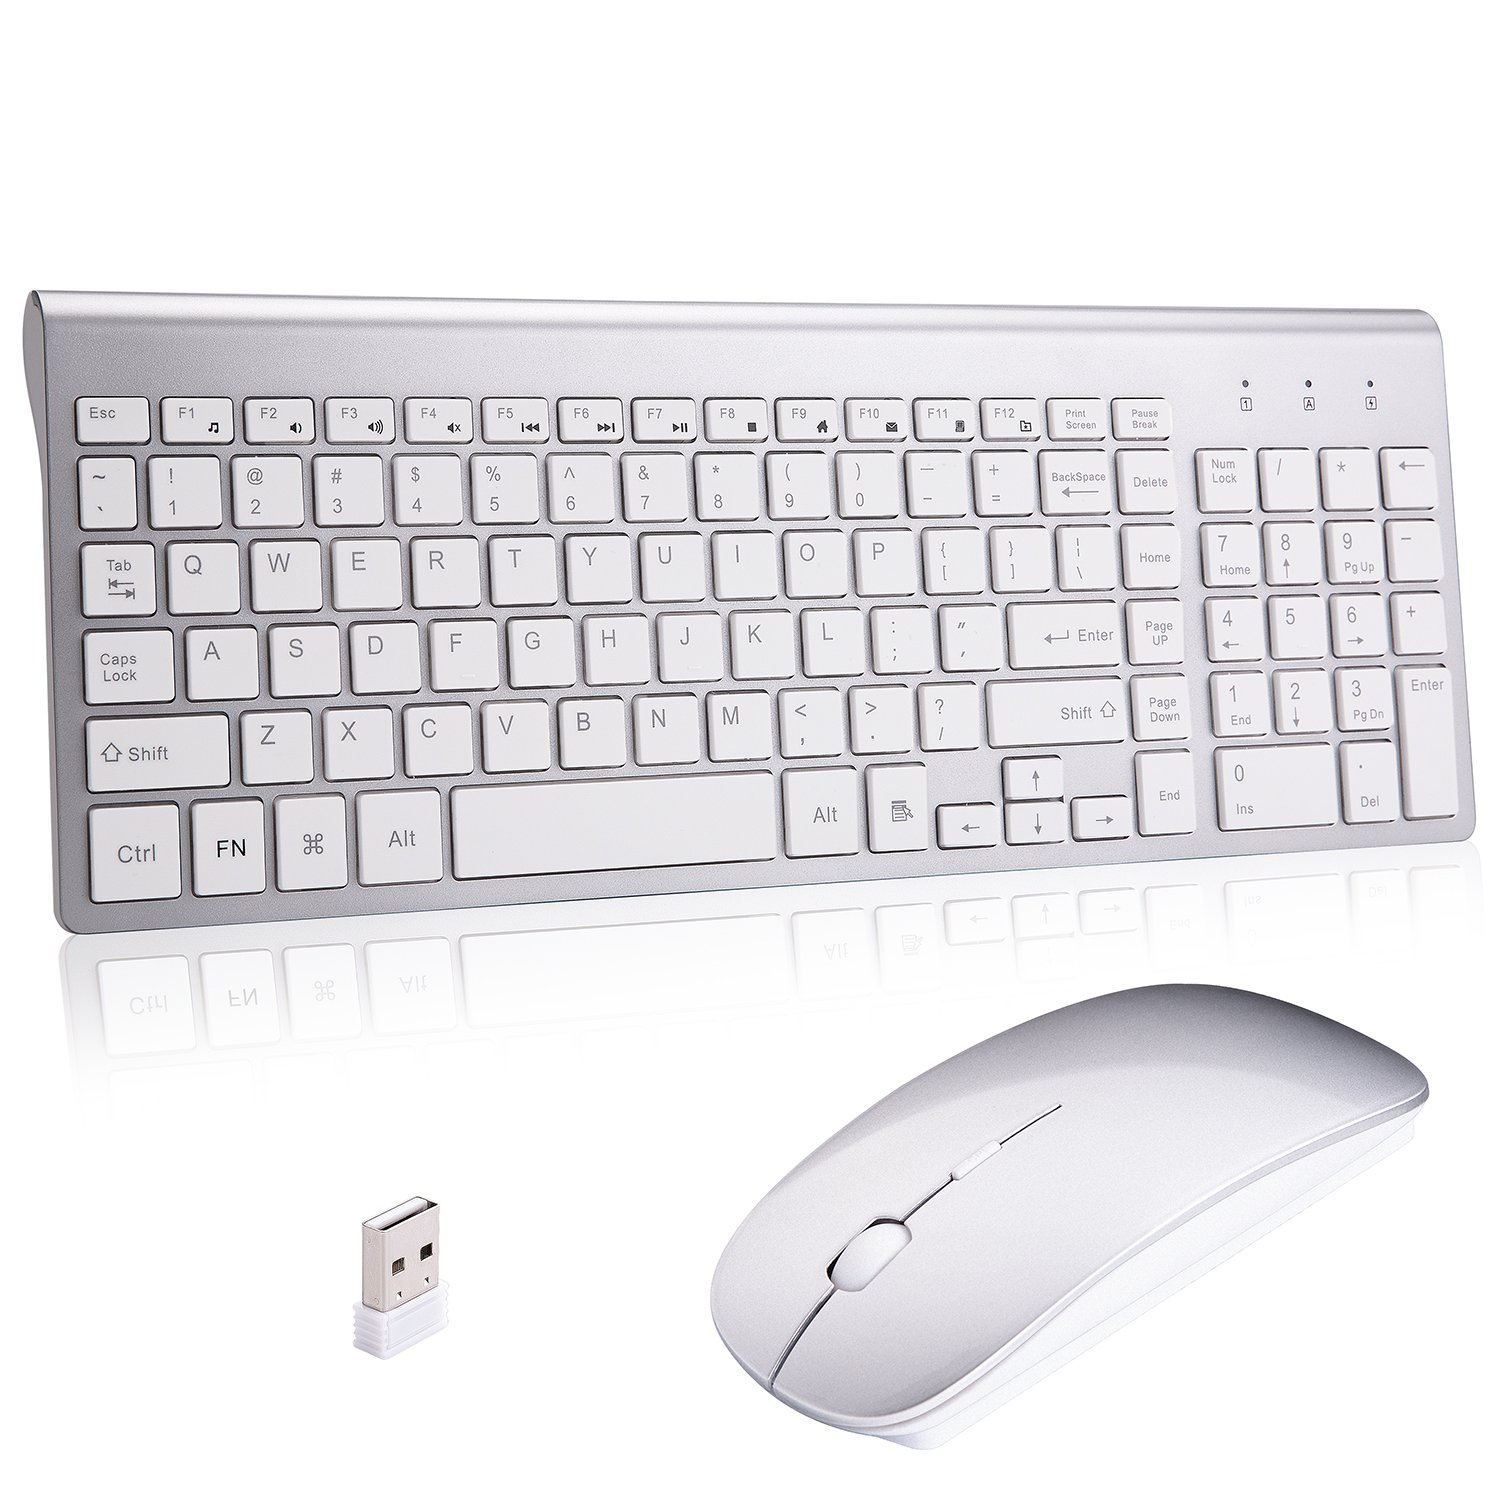 Wireless Keyboard and Mouse Combo,Ultra Slim with Mute Whispe-Quiet Keys for Laptop Notebook Mac PC Computer Windows OS Android (LC-TZ22-2)